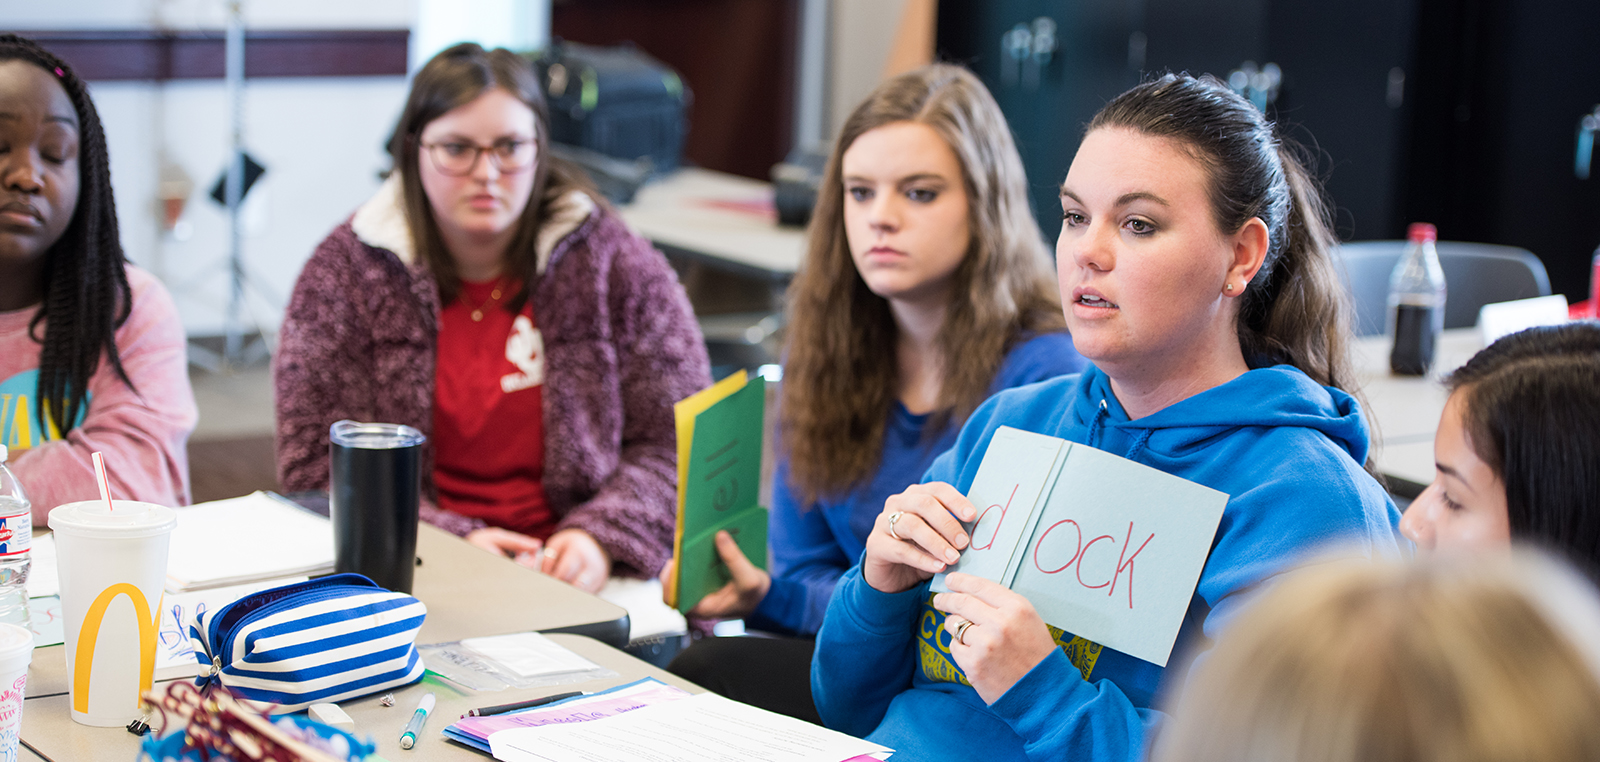 A student holding a blue piece of paper with a word wrote on it, in class.